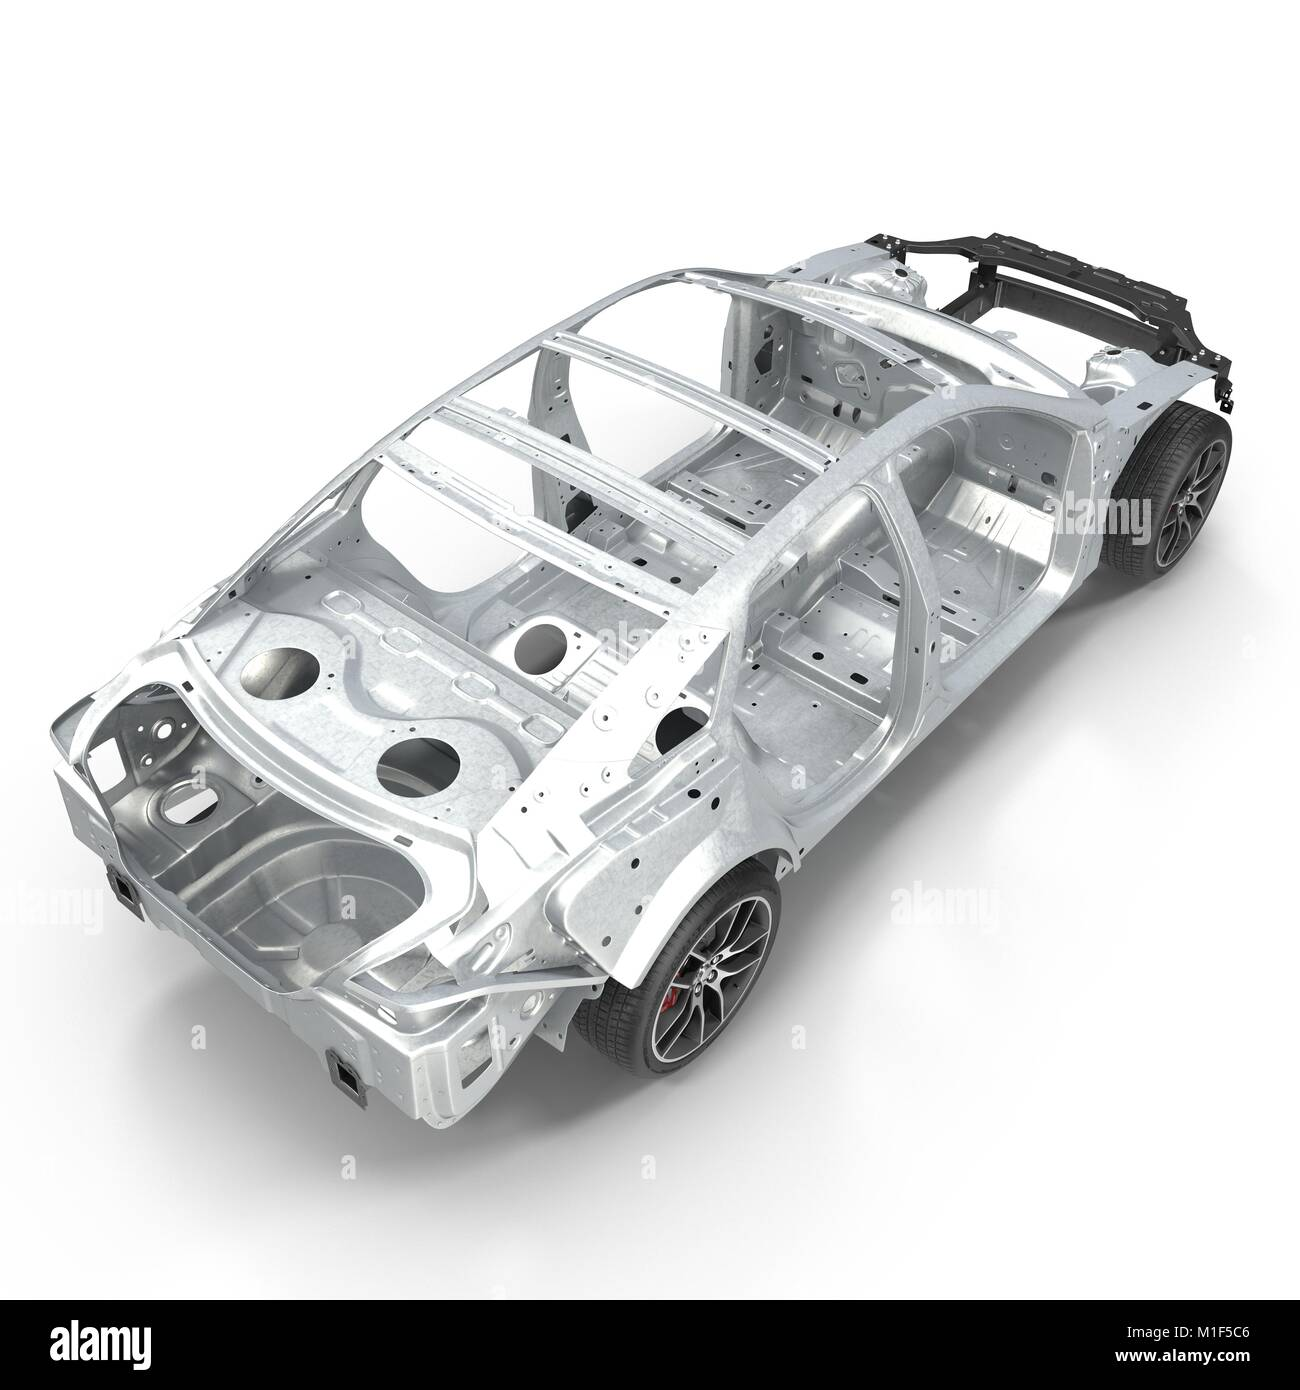 Frame Chassis Stock Photos & Frame Chassis Stock Images - Page 2 - Alamy